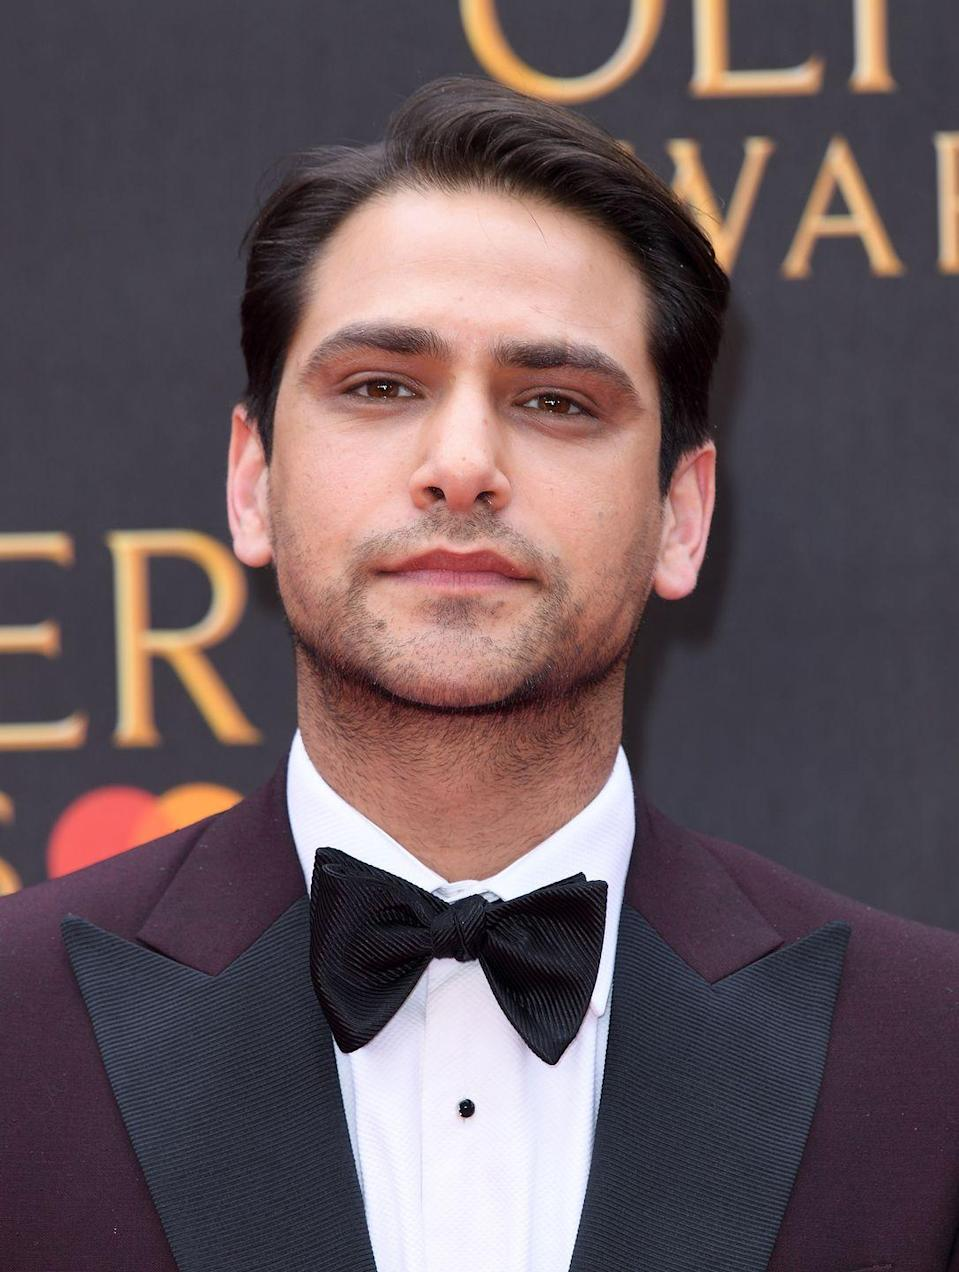 """<p><strong>The role: </strong><a href=""""https://www.denofgeek.com/tv/luke-pasqualino-interview-the-musketeers-snowpiercer-bsg-skins/"""" rel=""""nofollow noopener"""" target=""""_blank"""" data-ylk=""""slk:Tony"""" class=""""link rapid-noclick-resp"""">Tony</a> in <em>Skins</em></p><p><strong>Who *actually* played it:</strong> Nicholas Hoult</p><p><strong>T</strong><strong>he role they played instead: </strong>Freddie</p><p> Pasqualino says he was happy that he didn't end up getting cast as Tony. He didn't think he was ready for it. """"I think it was right to go to Nick Hoult."""" </p>"""